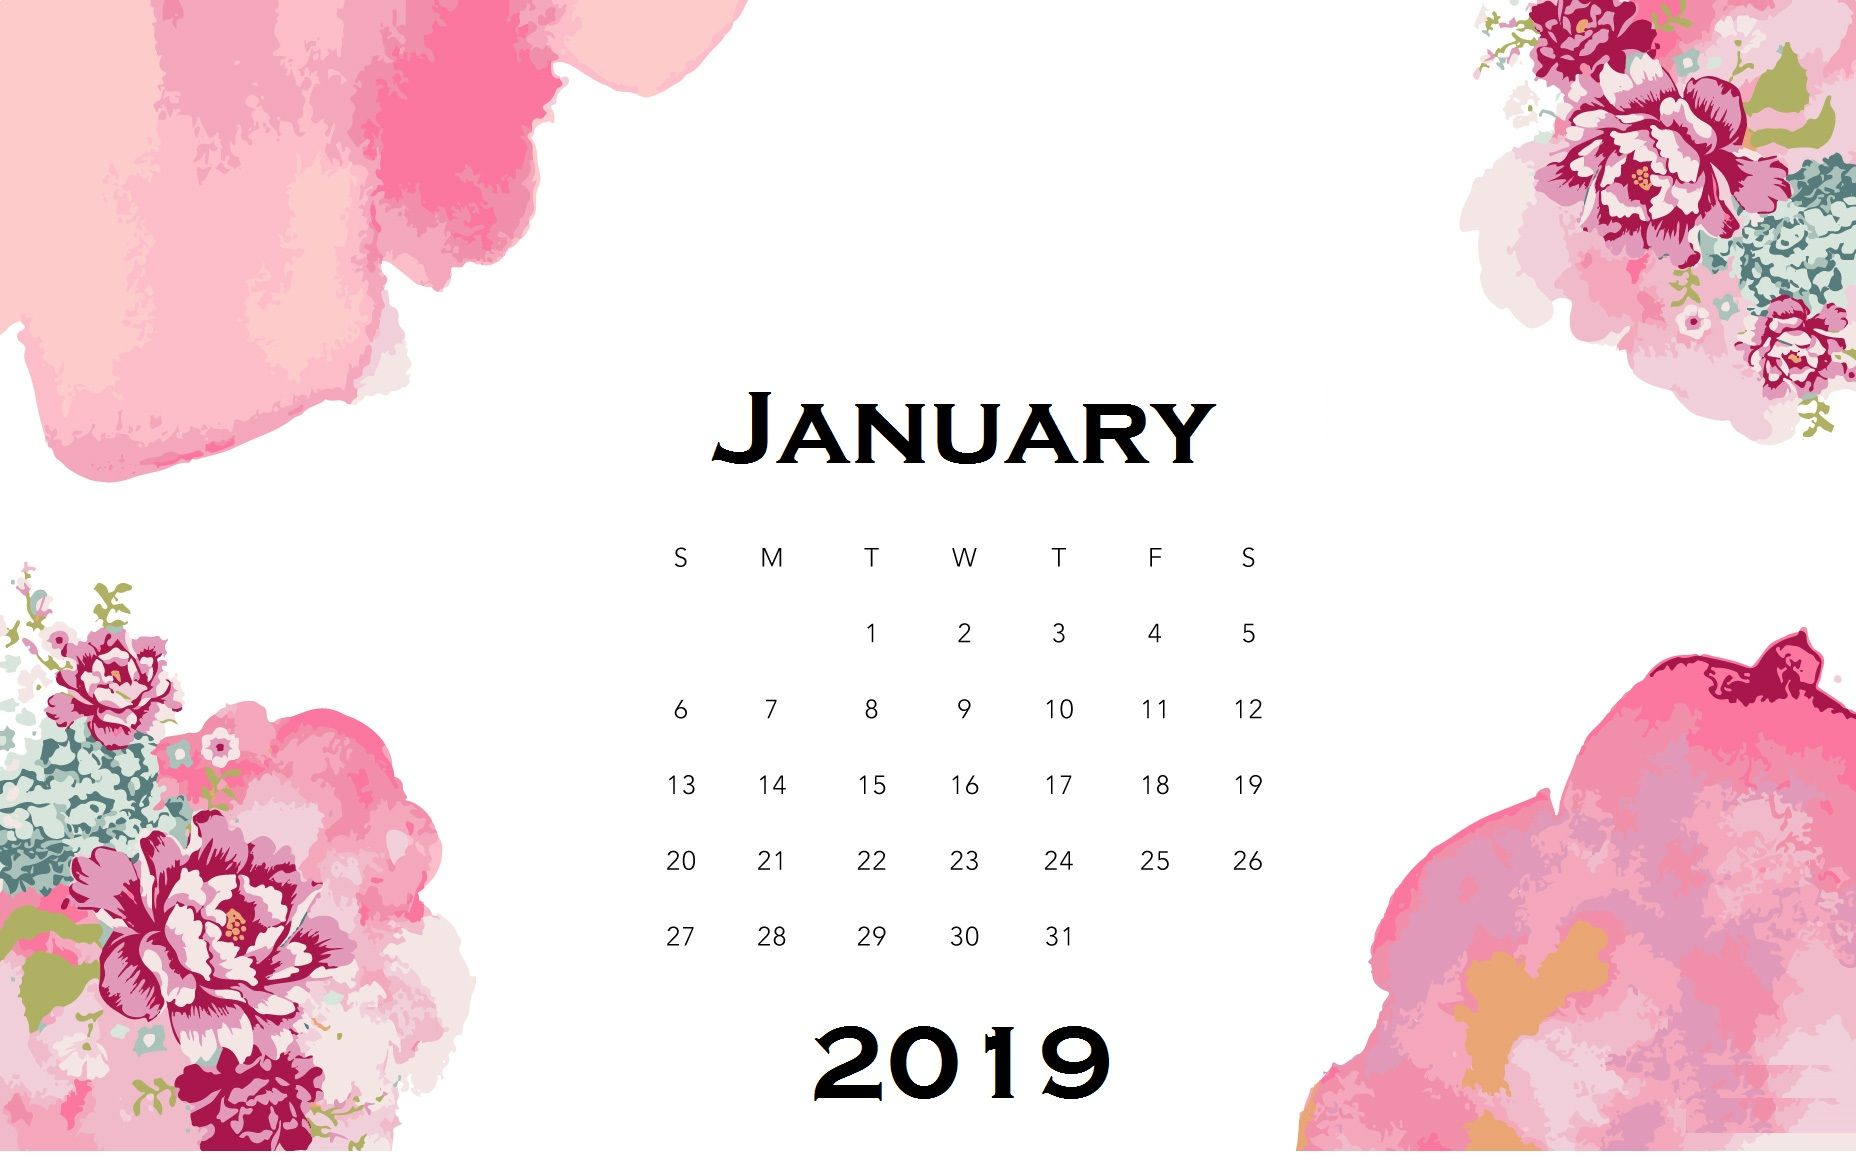 January 2019 Watercolor Calendar Wallpaper Calendar Wallpaper Watercolor Calendar Desk Calendars